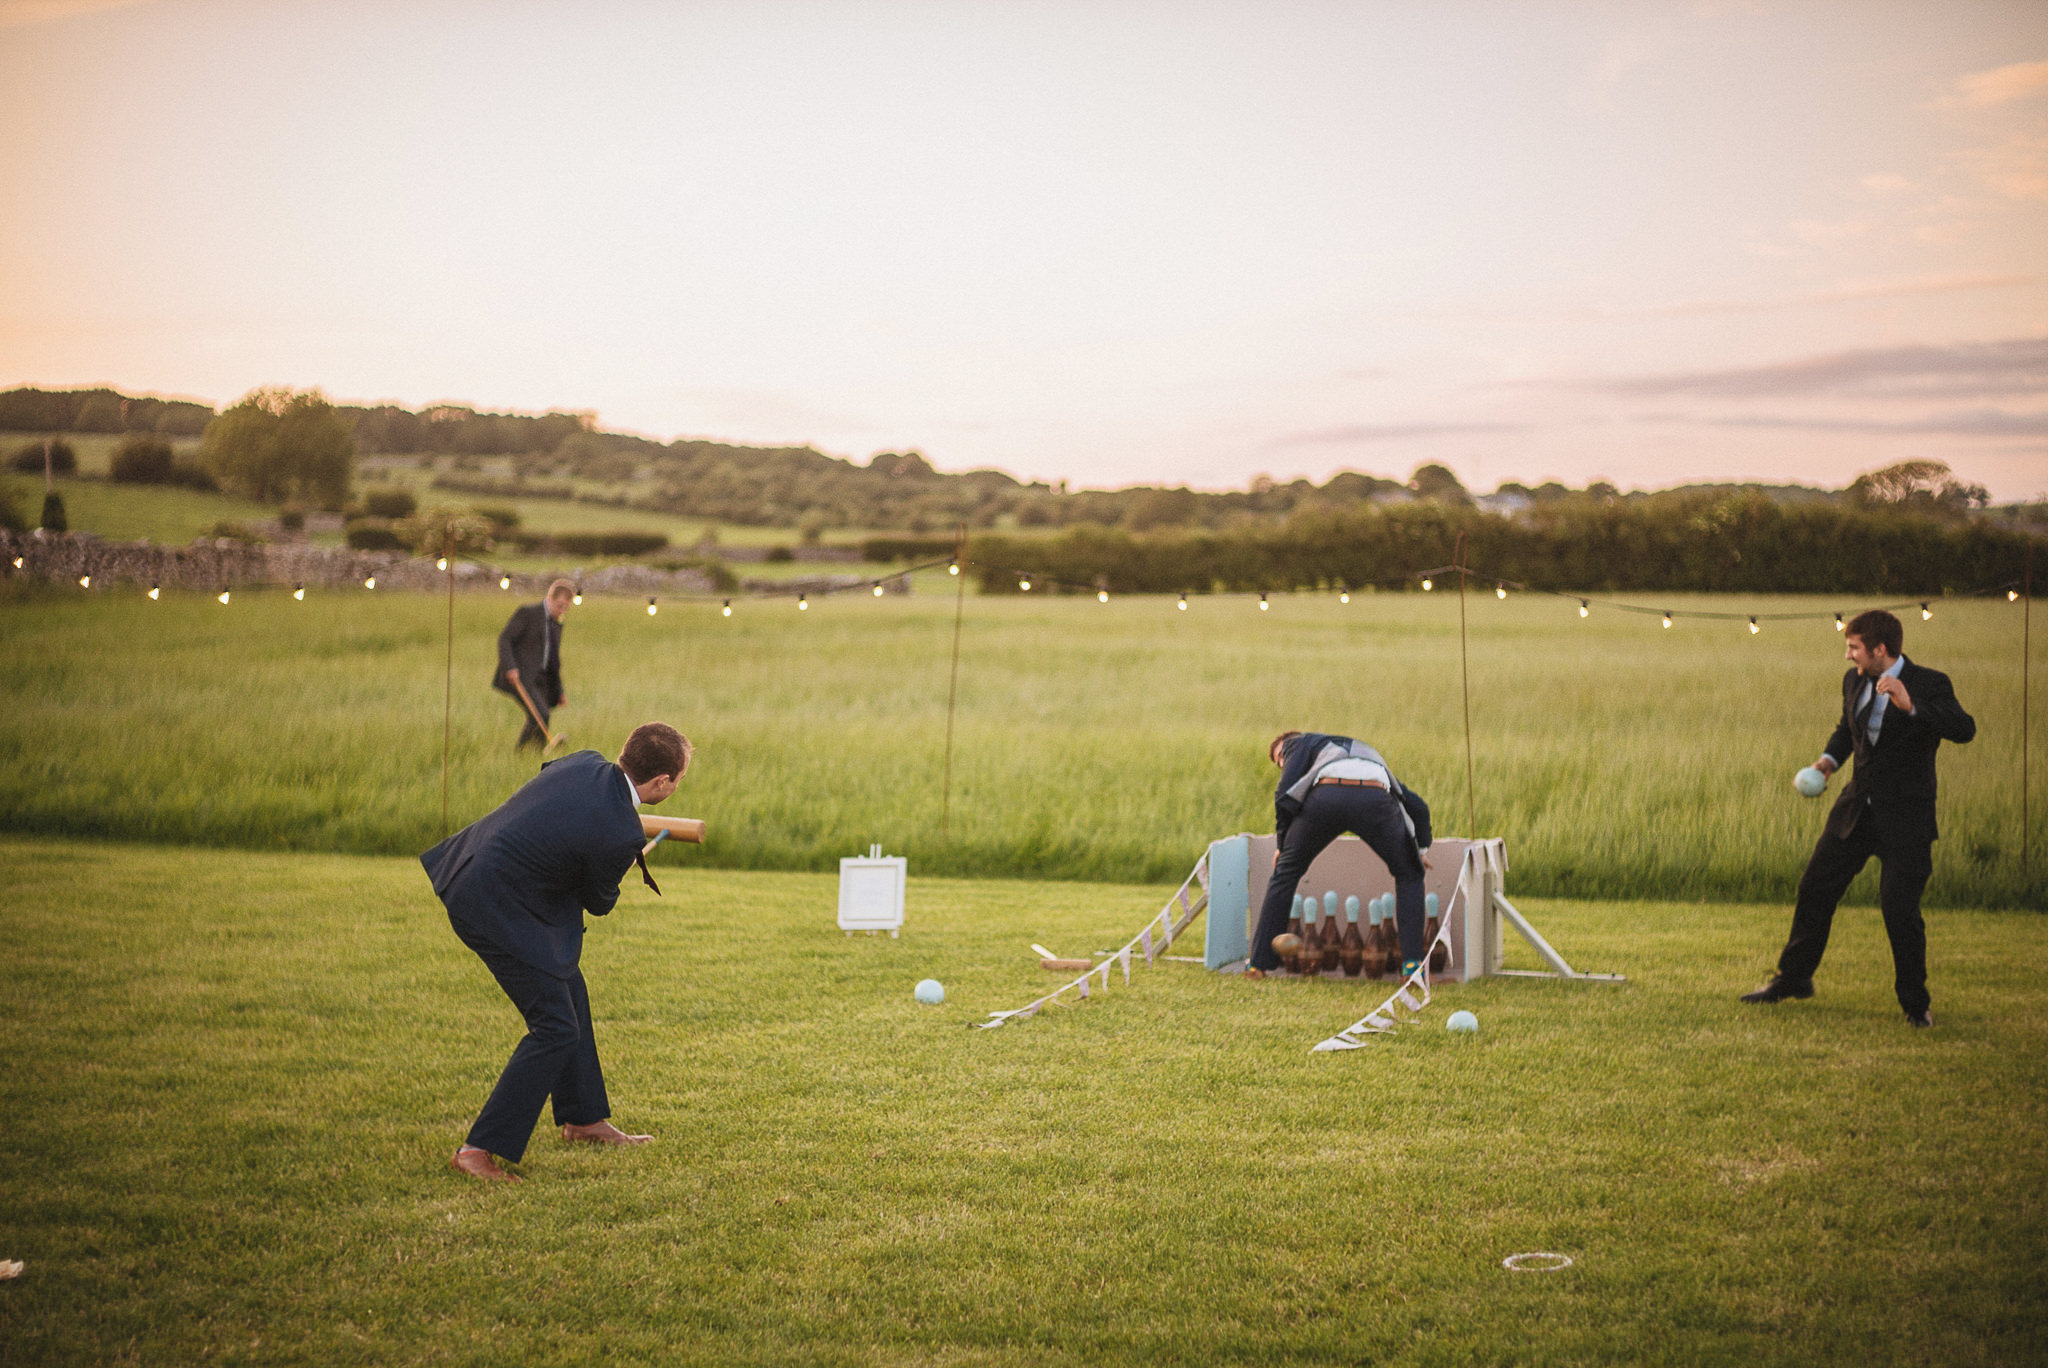 paul-marbrook-best-wedding-photographer-north-wales-130066